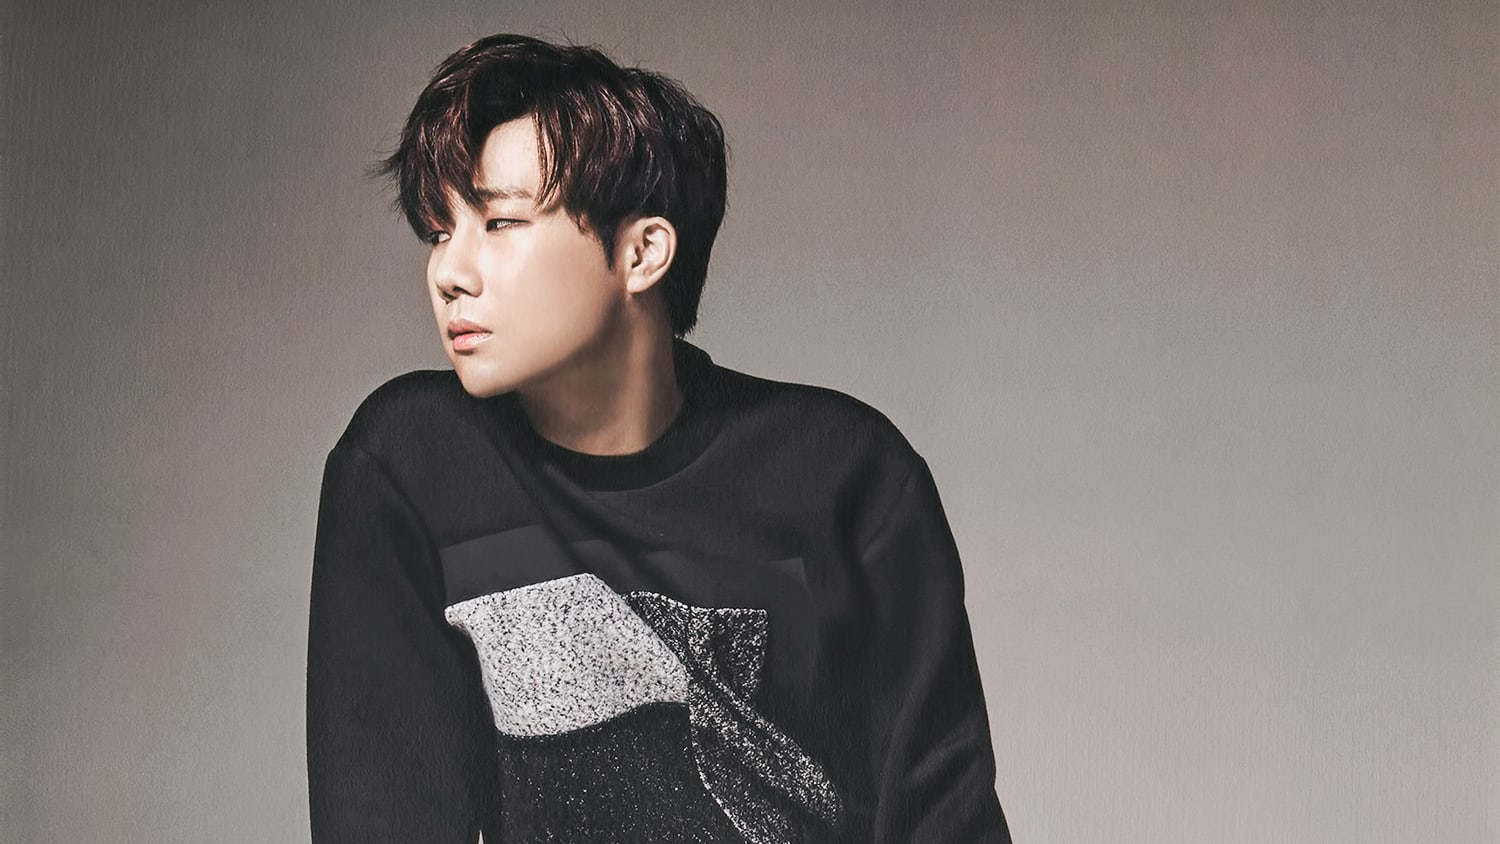 INFINITEs Sunggyu To Appear On Carefree Travelers